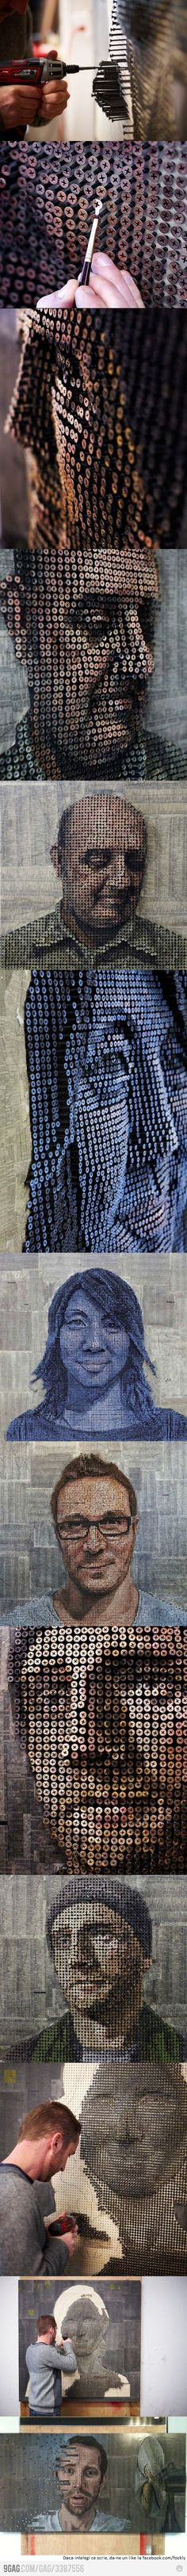 WOW!  amazing art done with phillips head screws